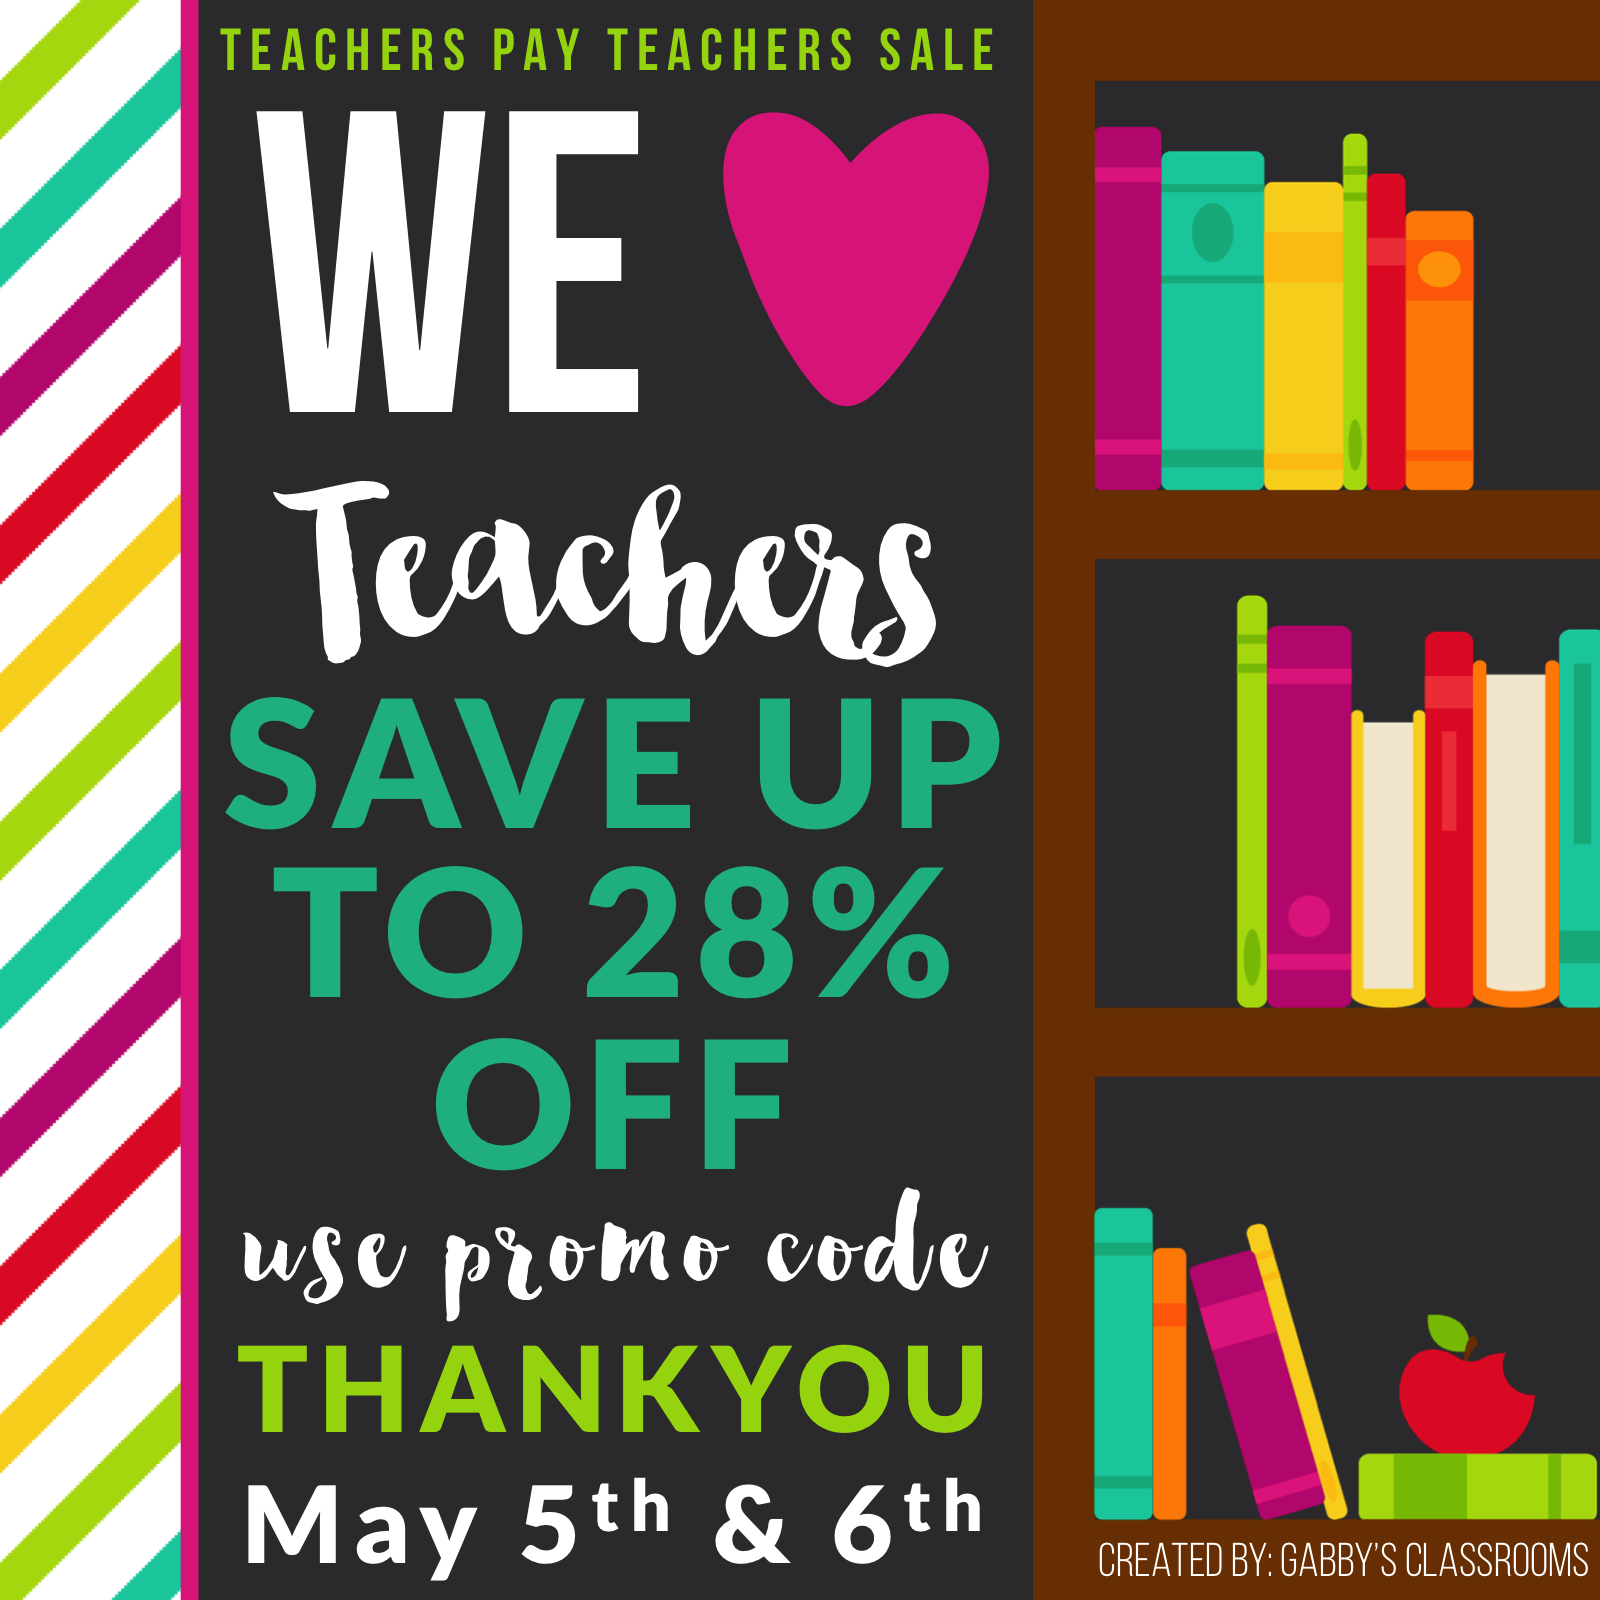 https://www.teacherspayteachers.com/Store/Danielle-Mastandrea